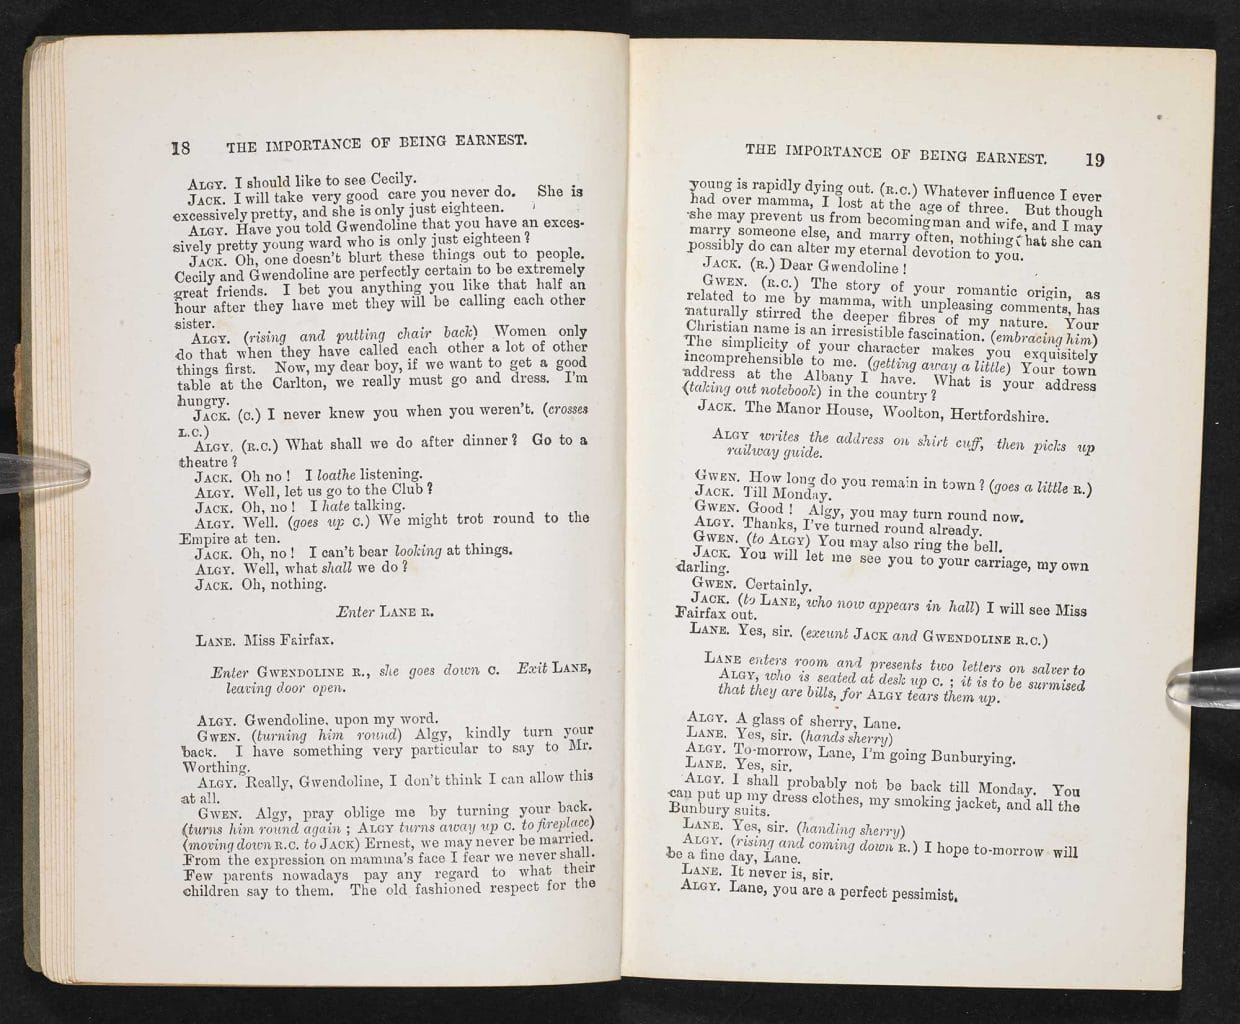 Oscar wildes the importance of being earnest the british library titleacting edition of the importance of being earnest estimated 1893 95 authorcreatoroscar wilde held bybritish library shelfmarkeccles 120 nvjuhfo Images